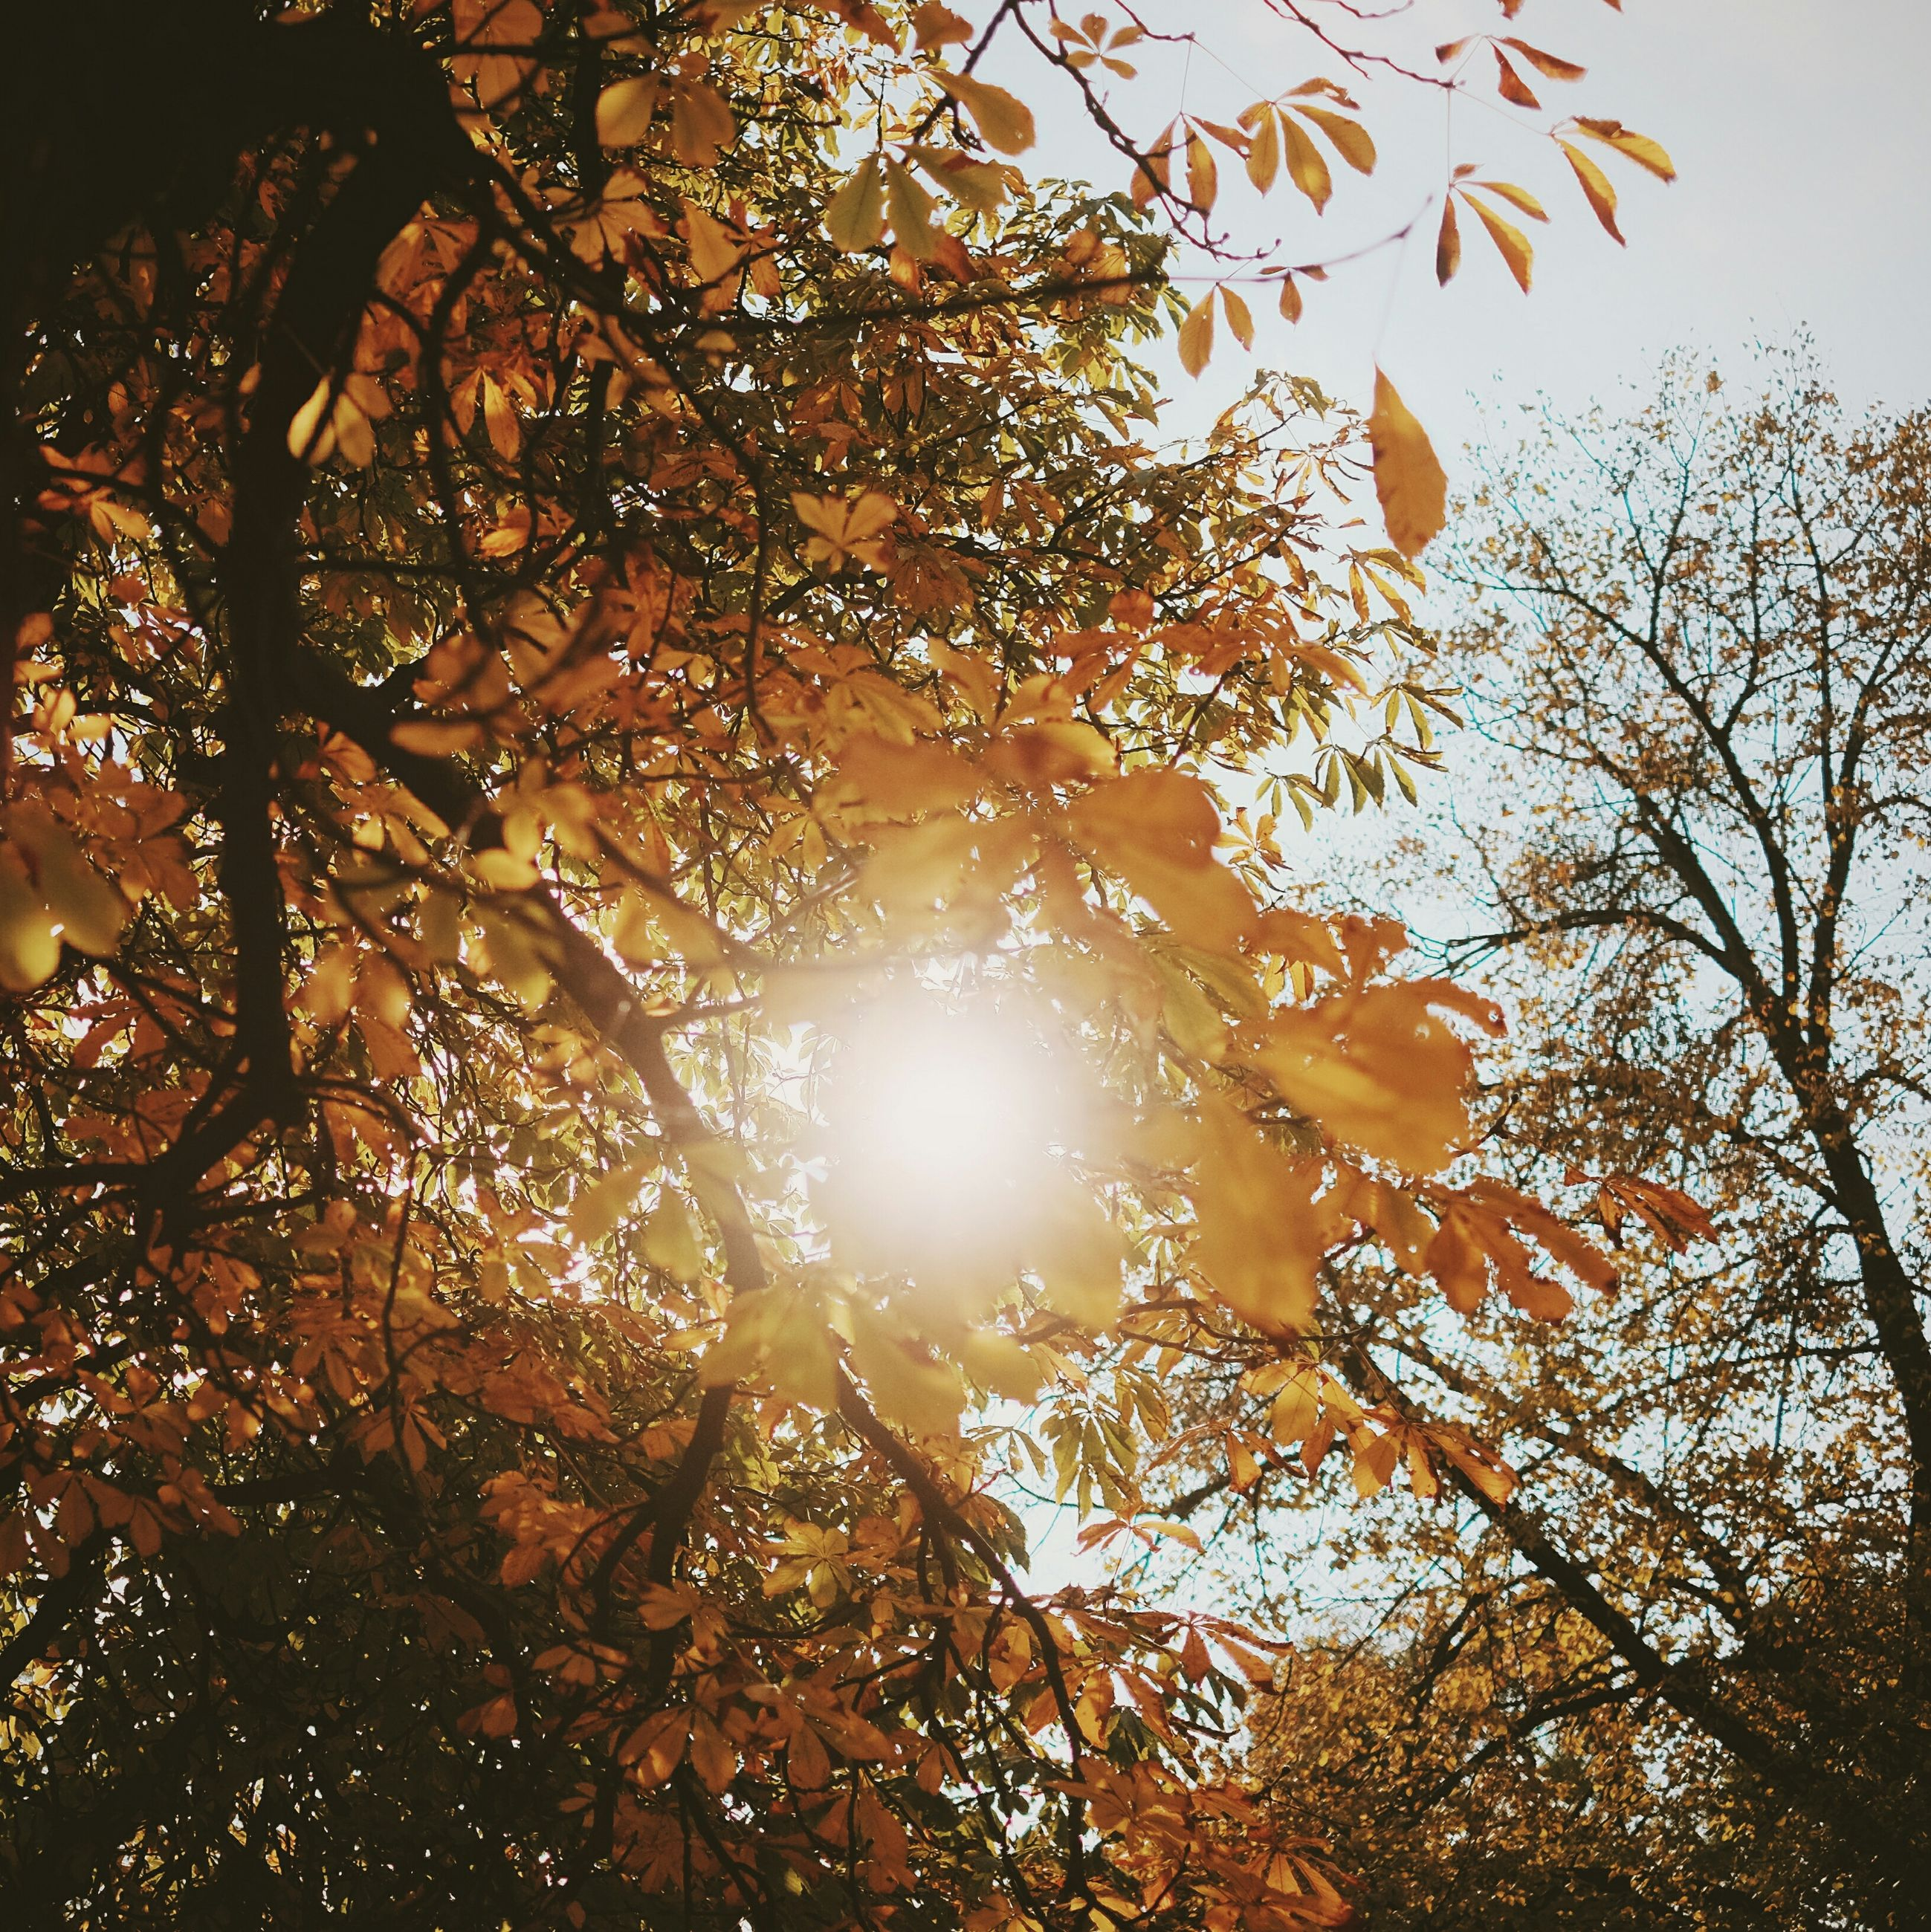 tree, sun, low angle view, branch, sunbeam, sunlight, tranquility, lens flare, nature, growth, beauty in nature, back lit, sky, silhouette, scenics, bright, outdoors, sunset, no people, leaf